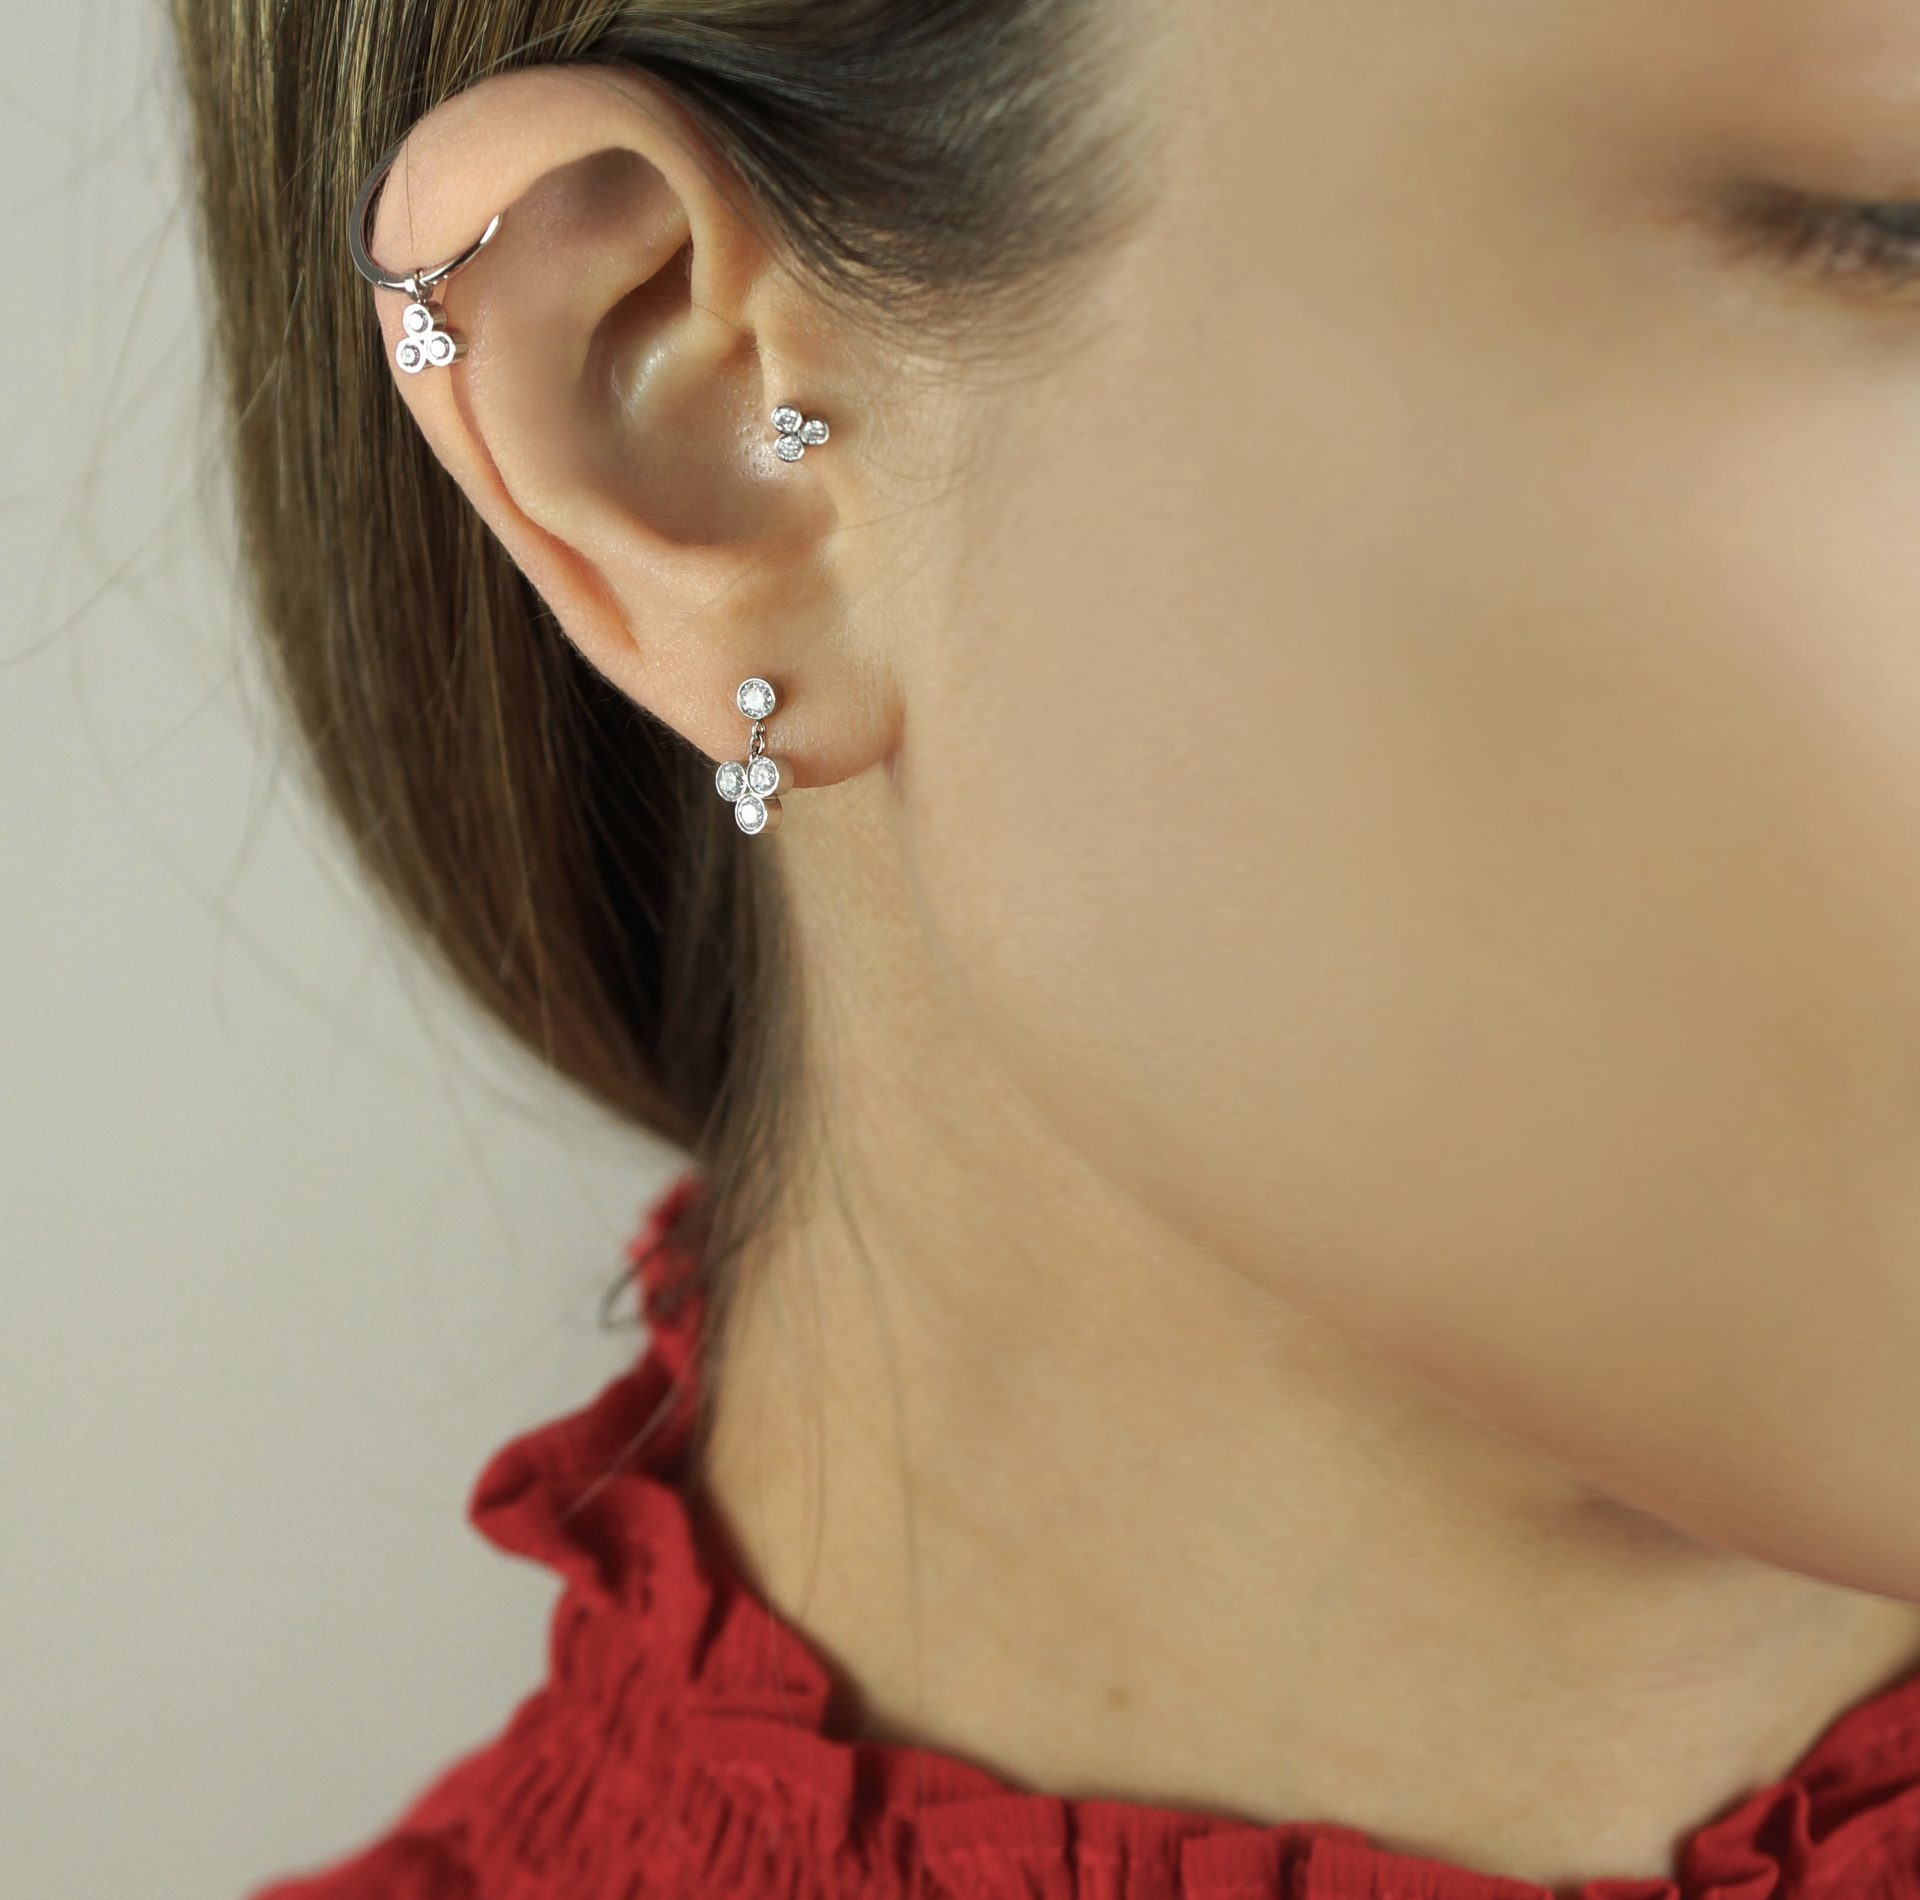 What type of jewellery should you buy for a curated ear? When it comes to decorating your multiple piercings with jewellery, your options are almost limitless. You can try just about anything, from wearing multiple huggies with diamond charms, from your Helix all the way down to your lower lobe